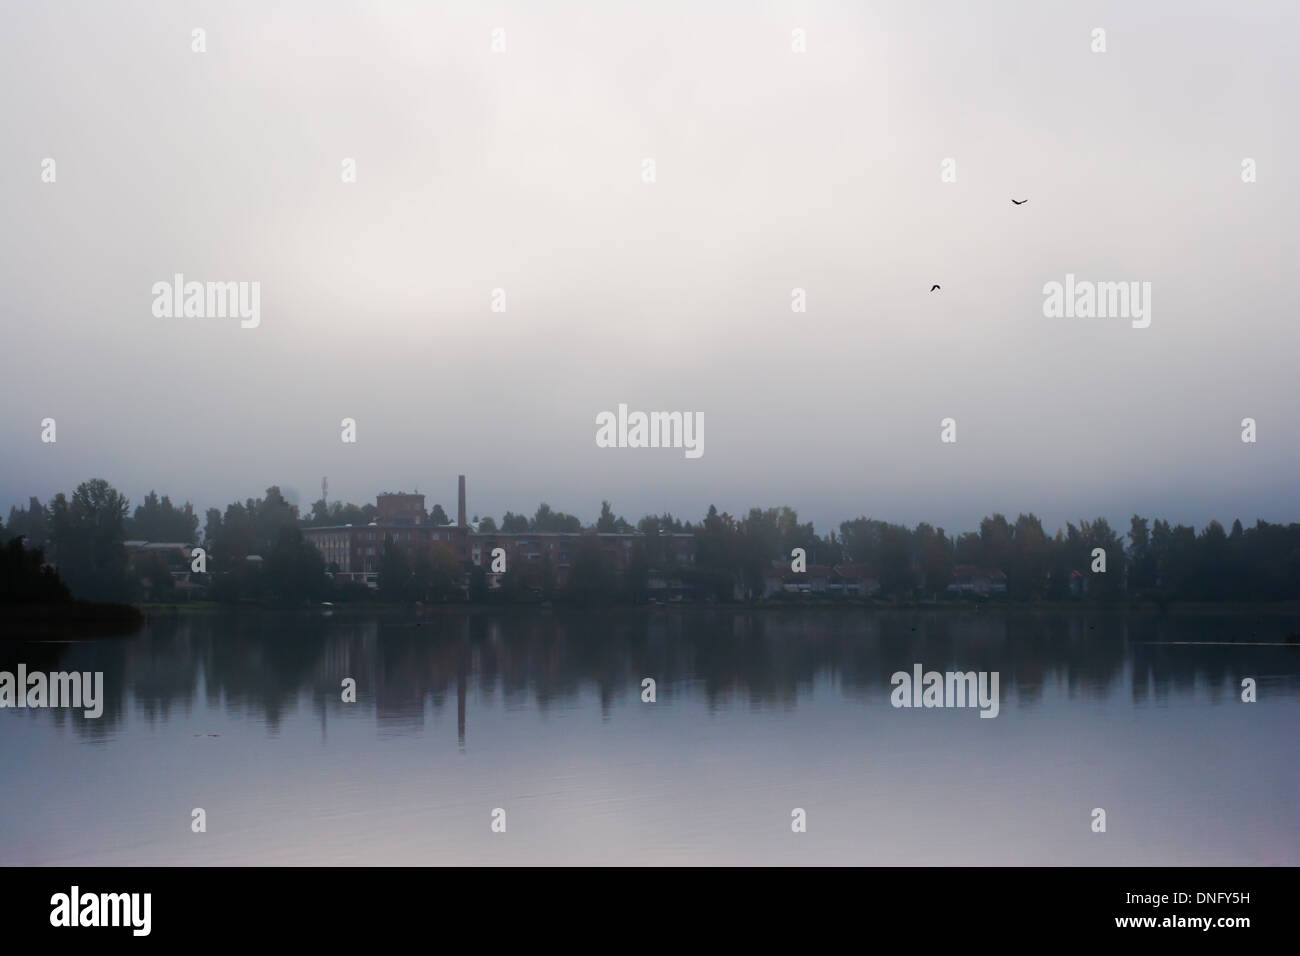 Small town behind a lake on misty overcast morning - Stock Image